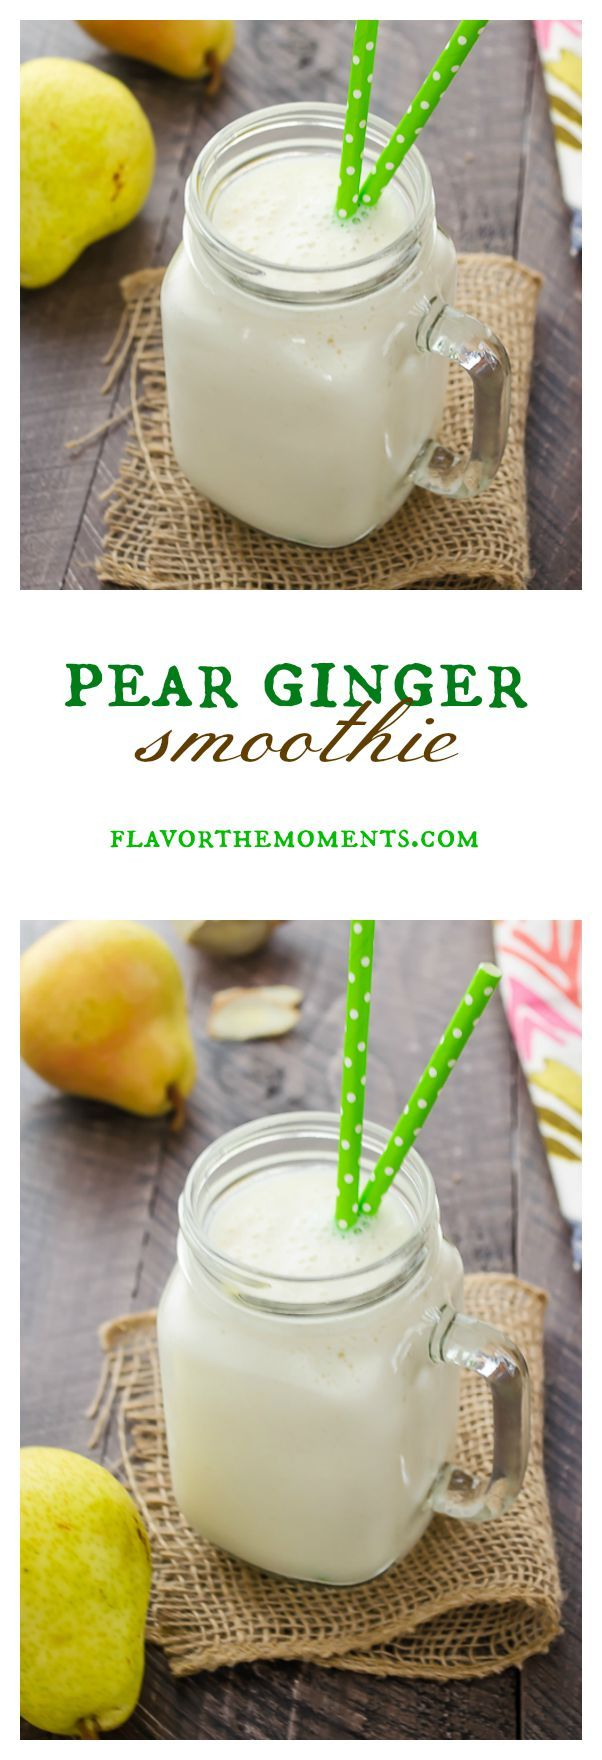 Pear Ginger Smoothie | flavorthemoments.com